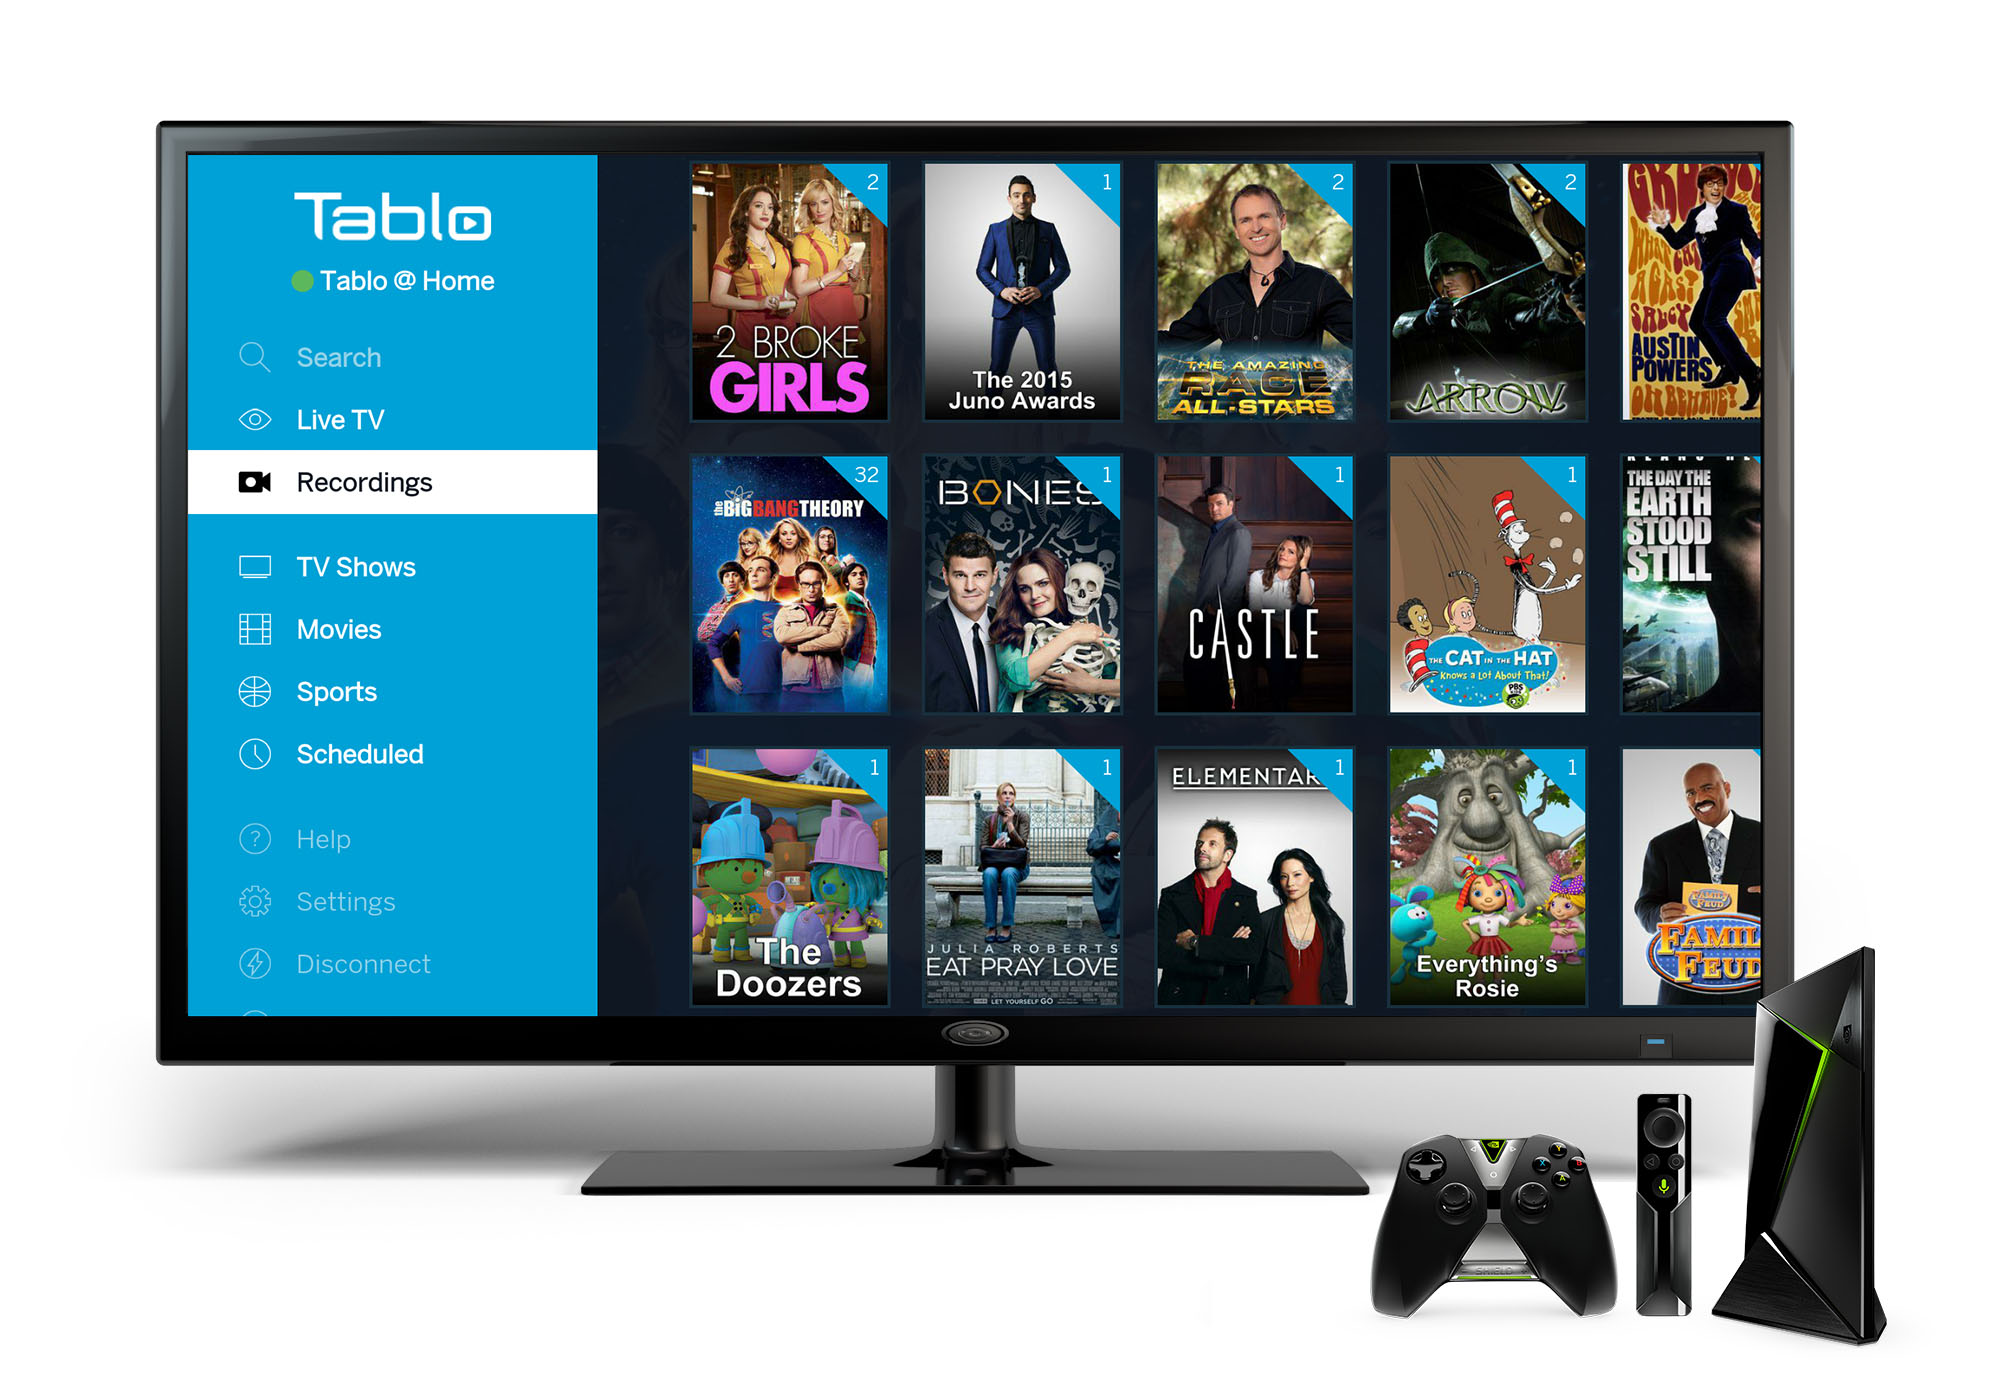 Tablo Android TV App Recordings View Nvidia Shield